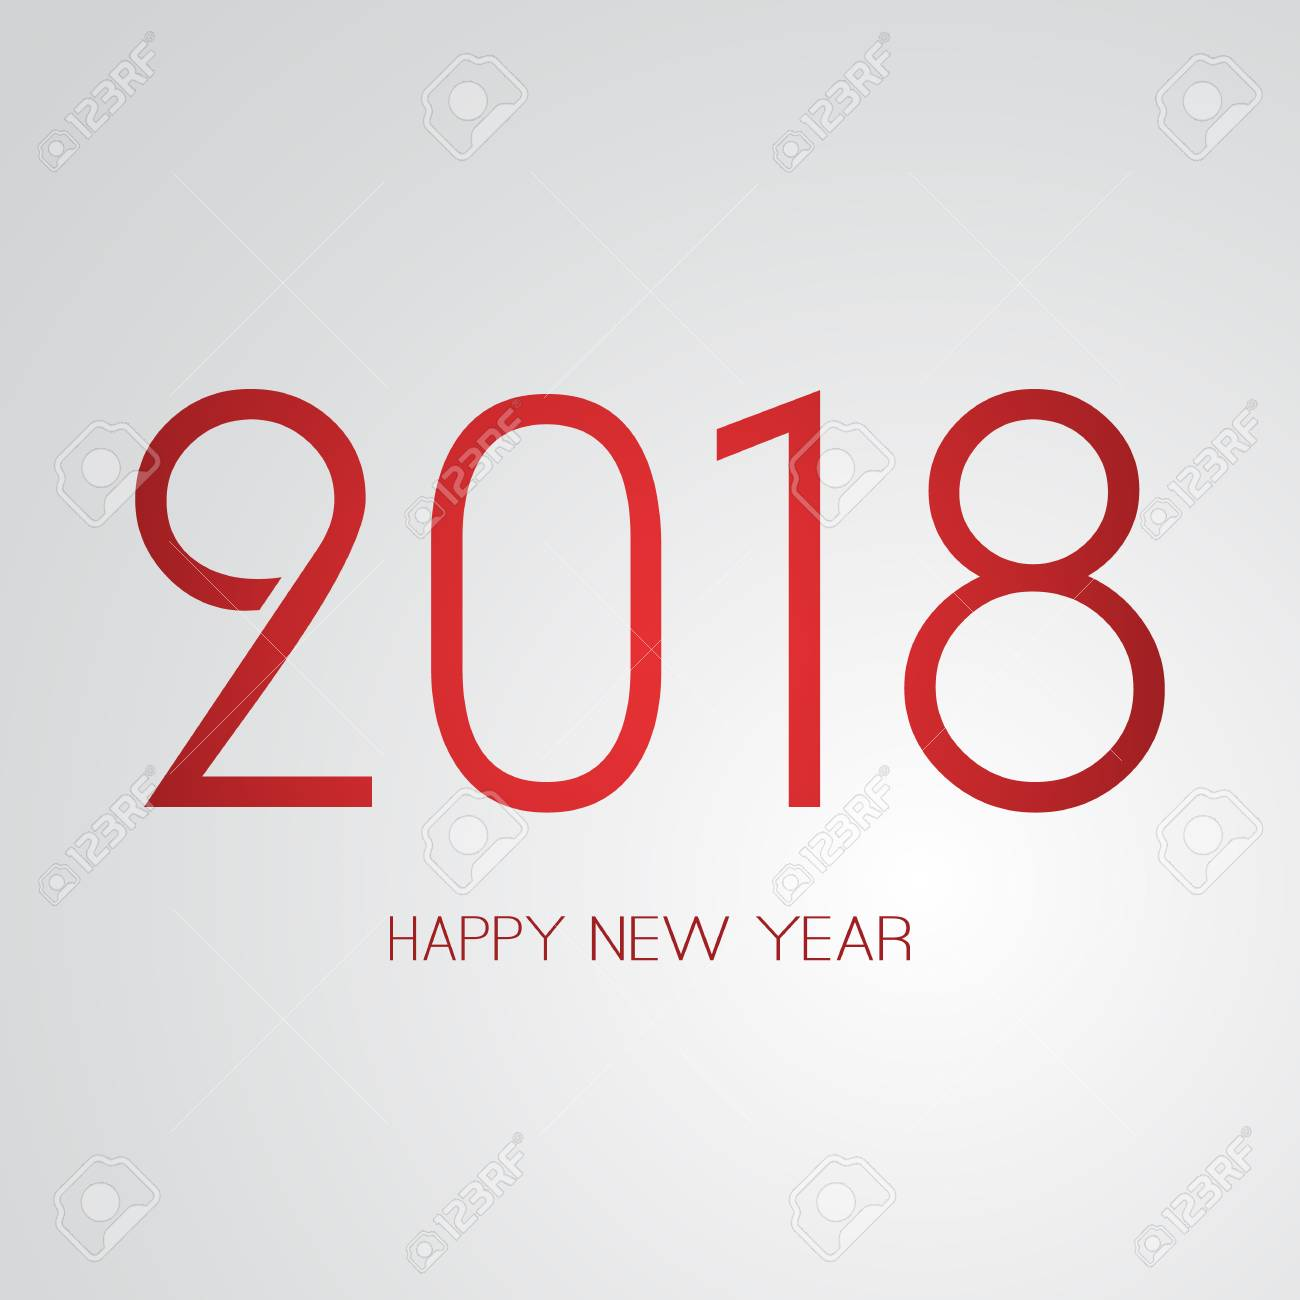 Best Wishes   Happy New Year Greeting Card Or Background  Creative     Best Wishes   Happy New Year Greeting Card or Background  Creative Design  Template   2018